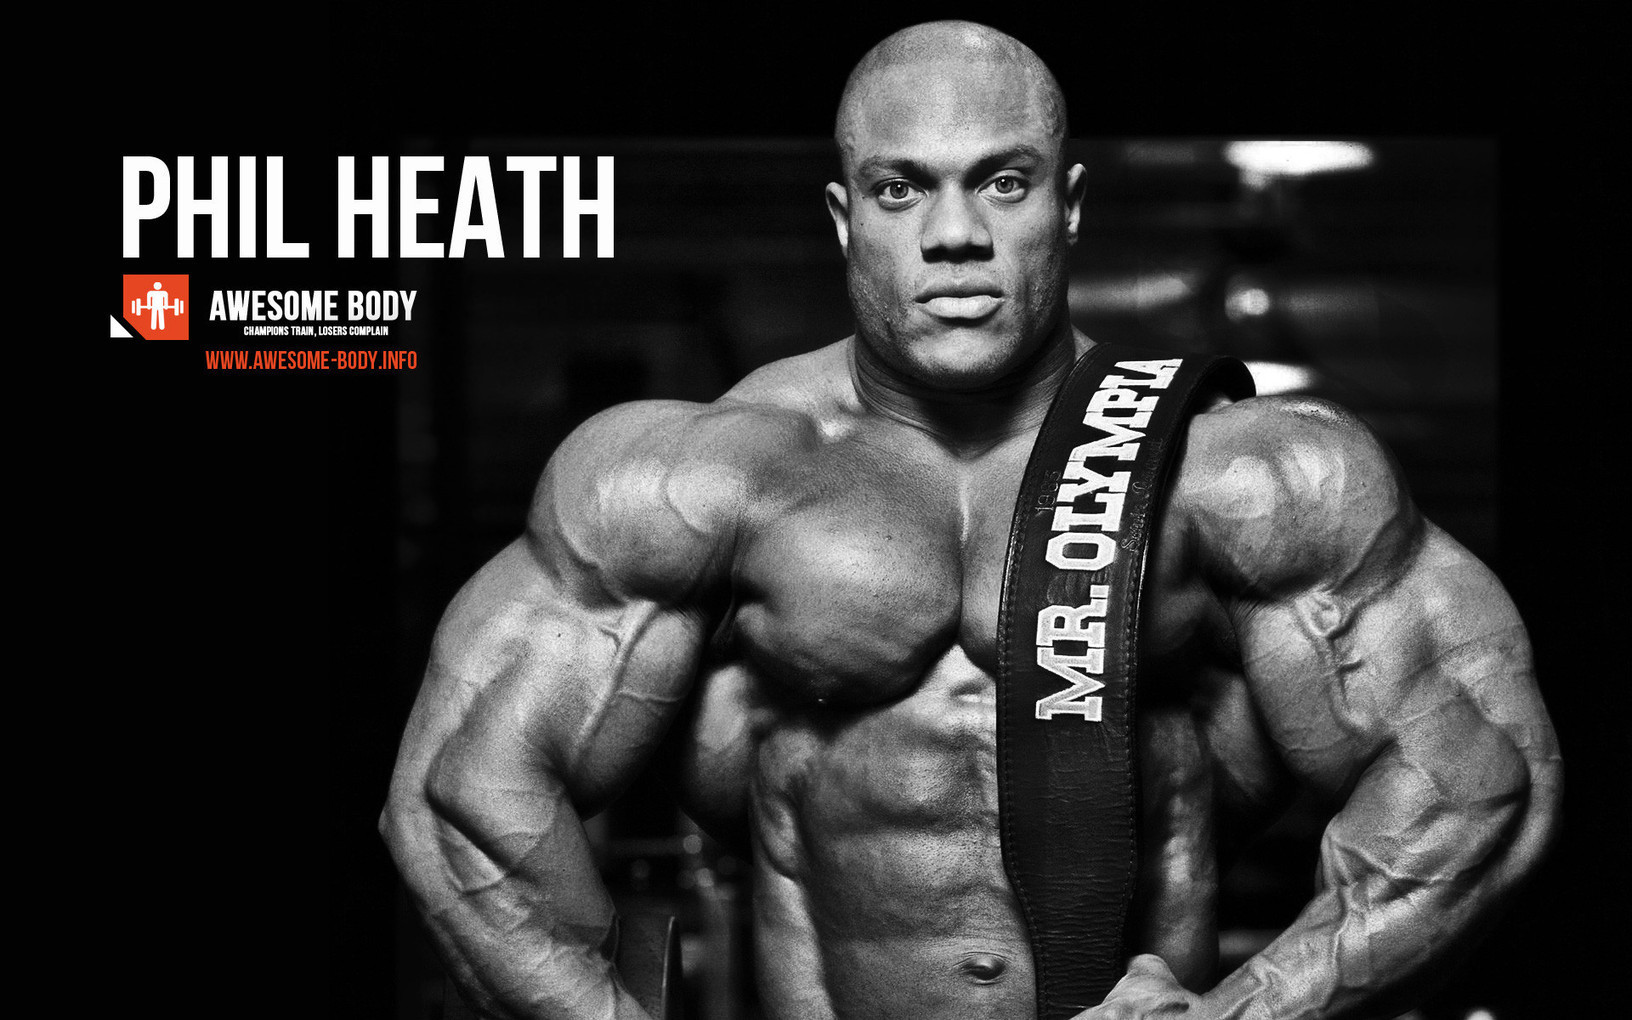 phil heath 2013 bodybuilding wallpaper hd a